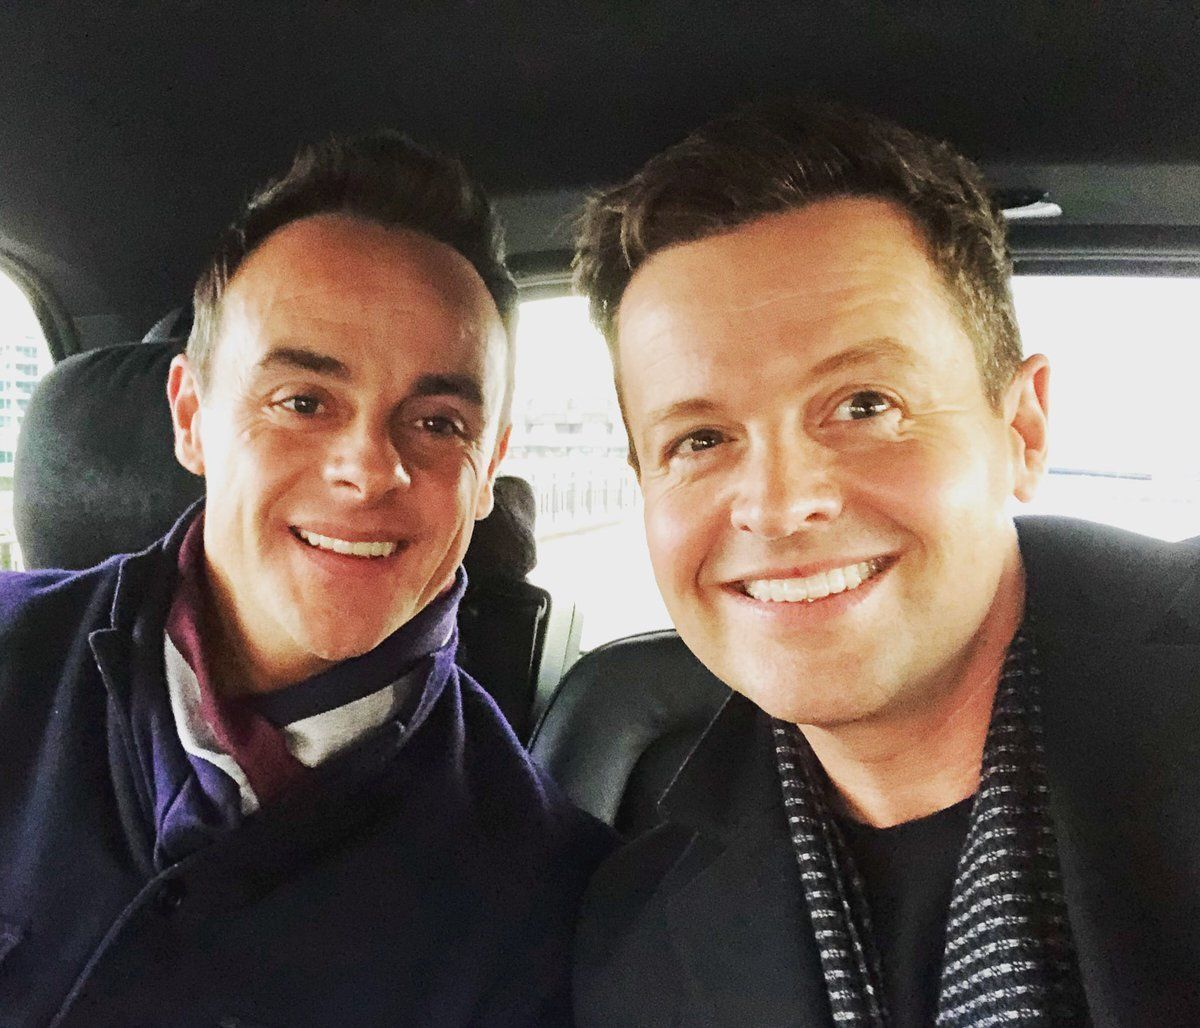 REUNITED: Ant And Dec Are Reunited At 'Britain's Got Talent' Auditions As Ant Returns To